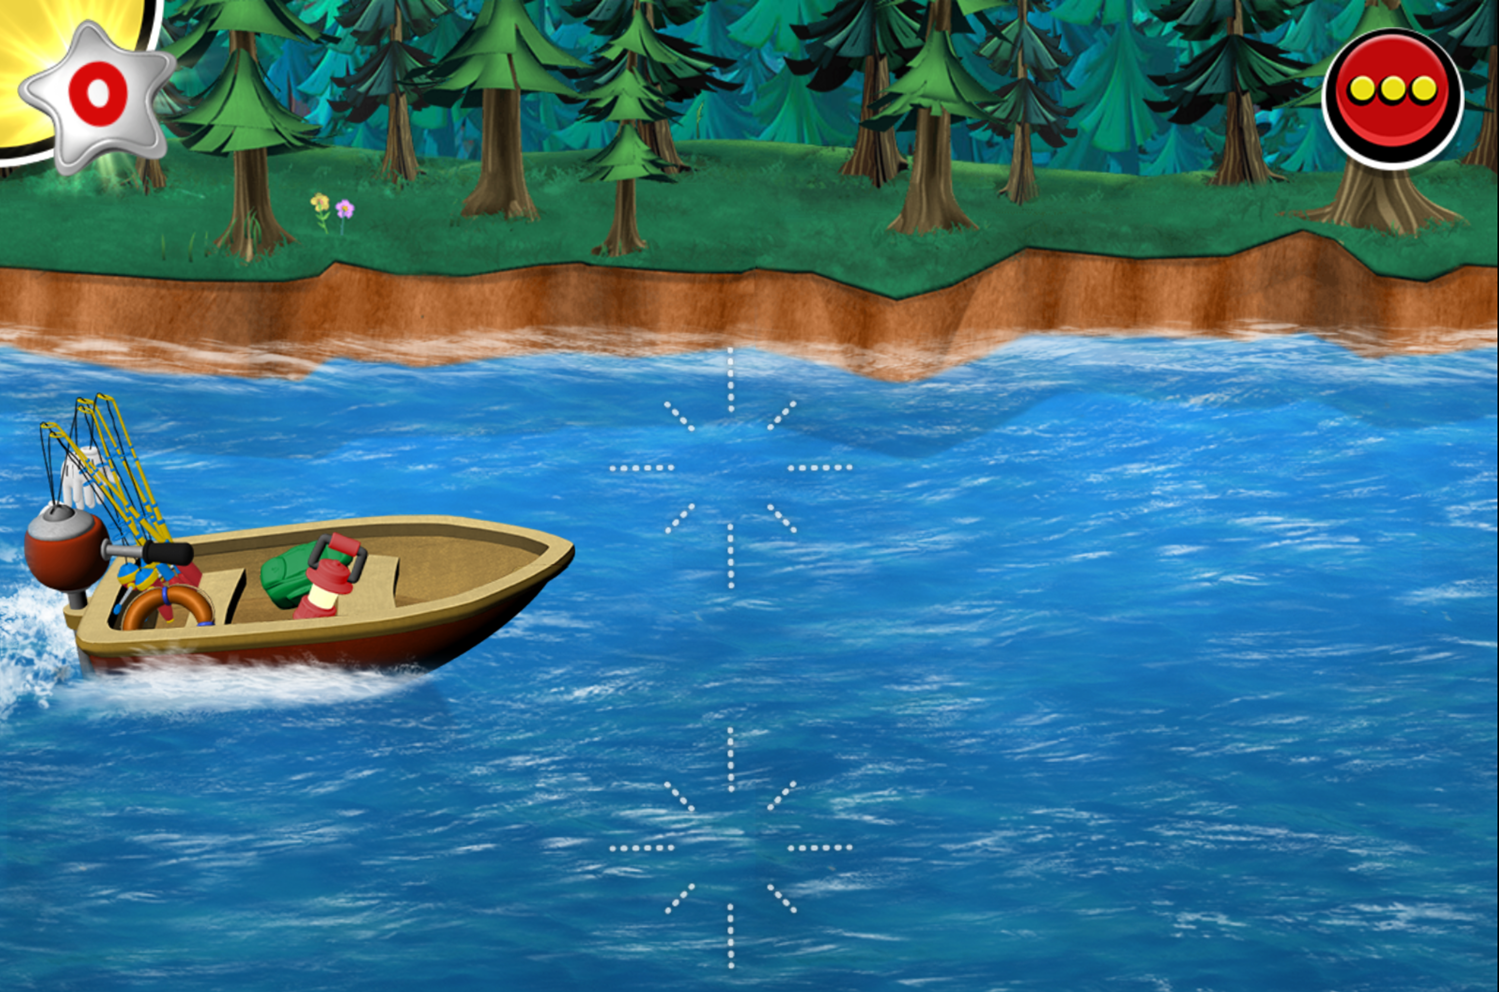 Mickey and Minnie's Universe Boating Screenshot.